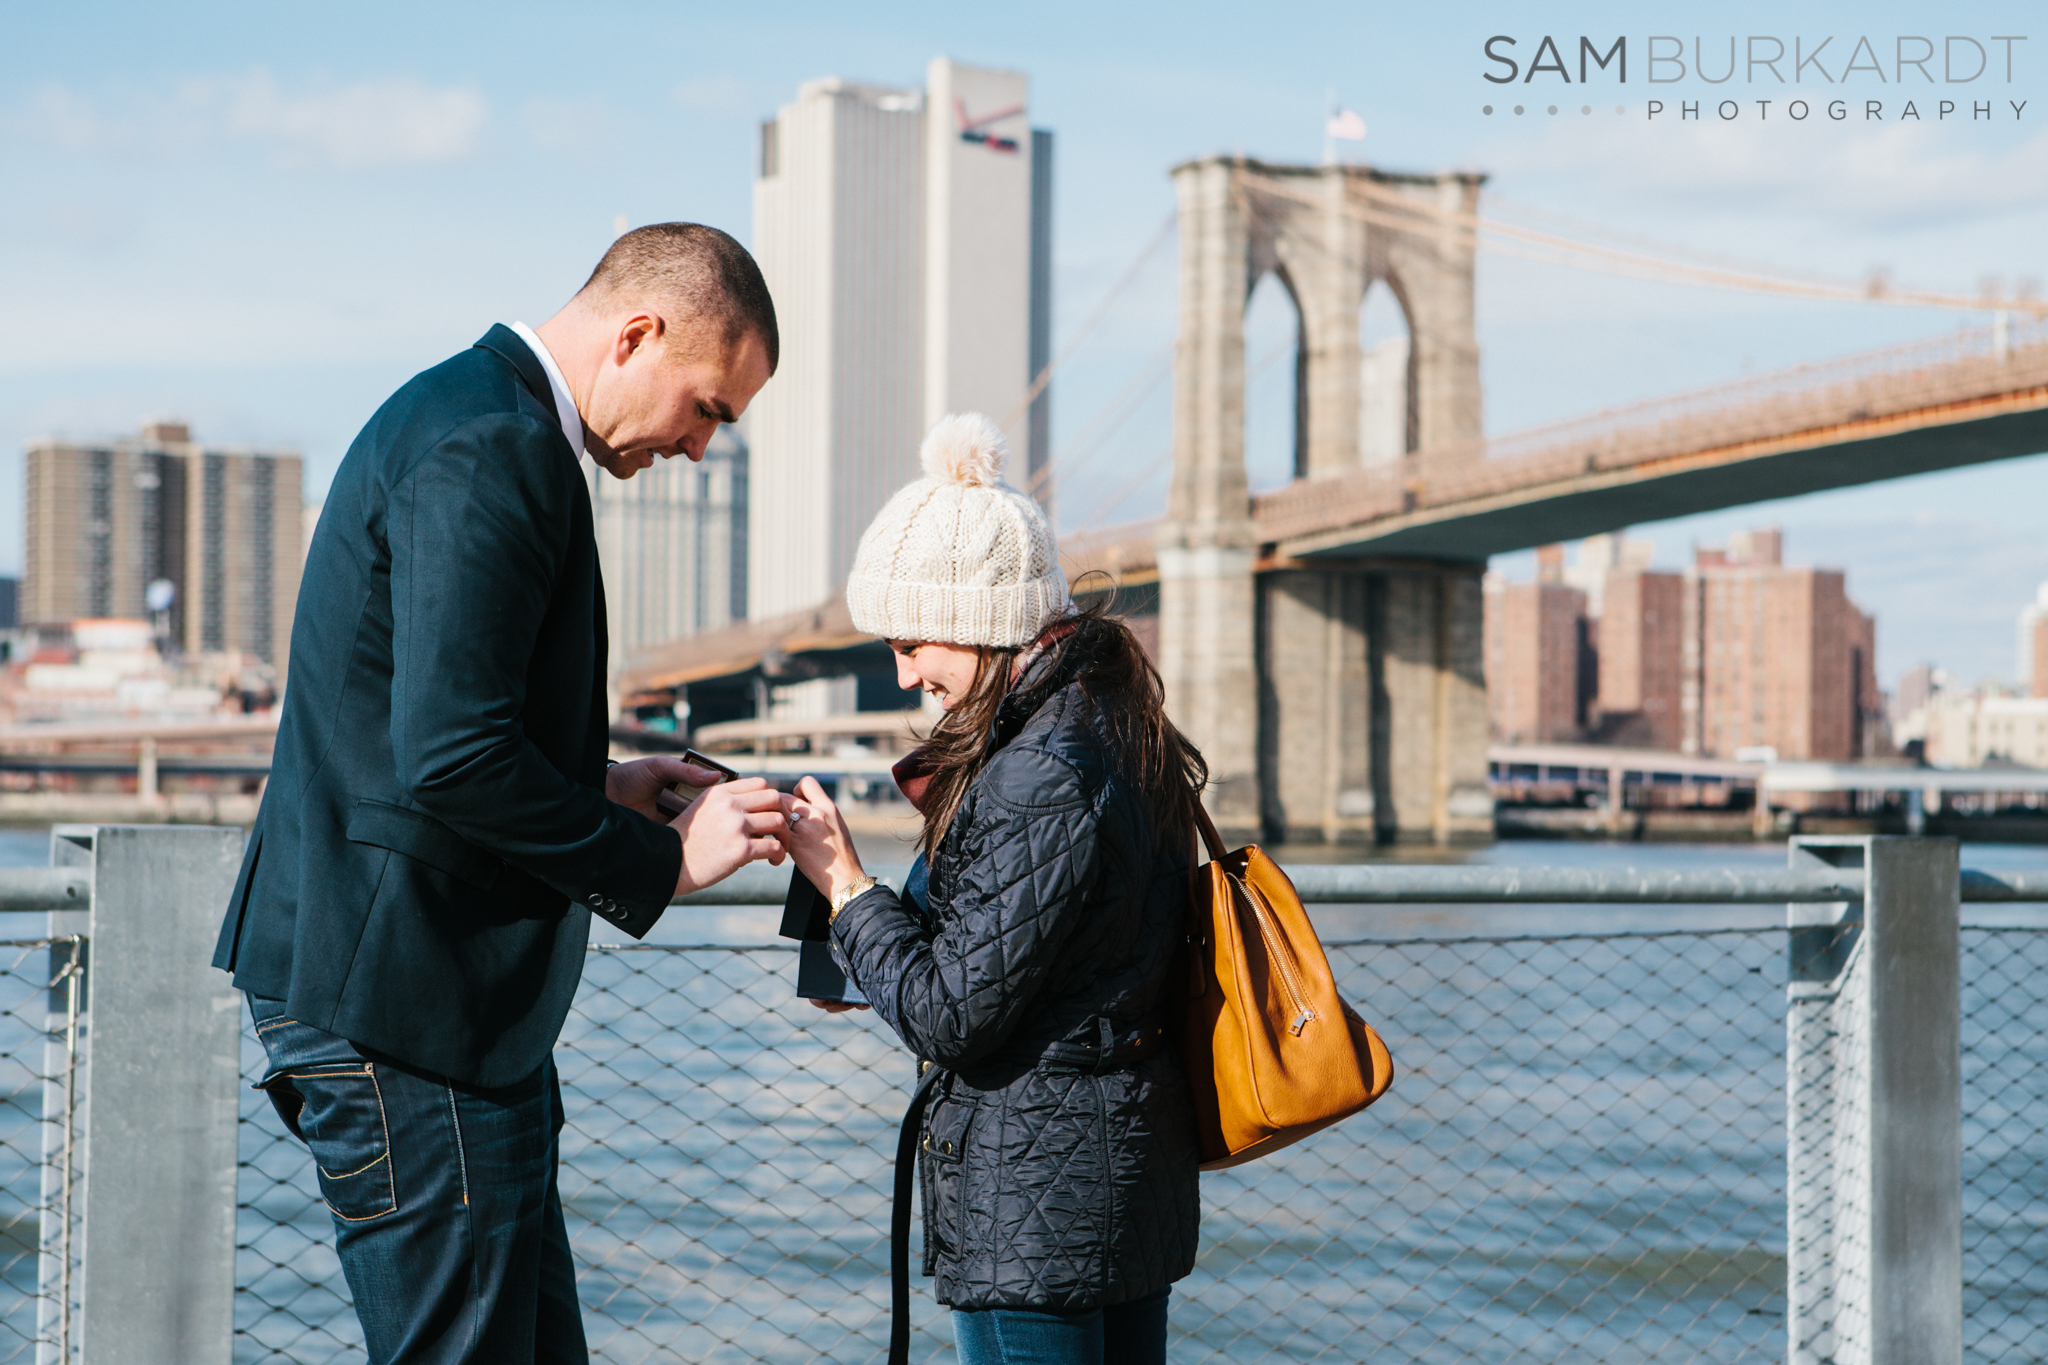 samburkardt_brooklyn_bridge_new_york_engagement_proposal_skyline_0007.jpg